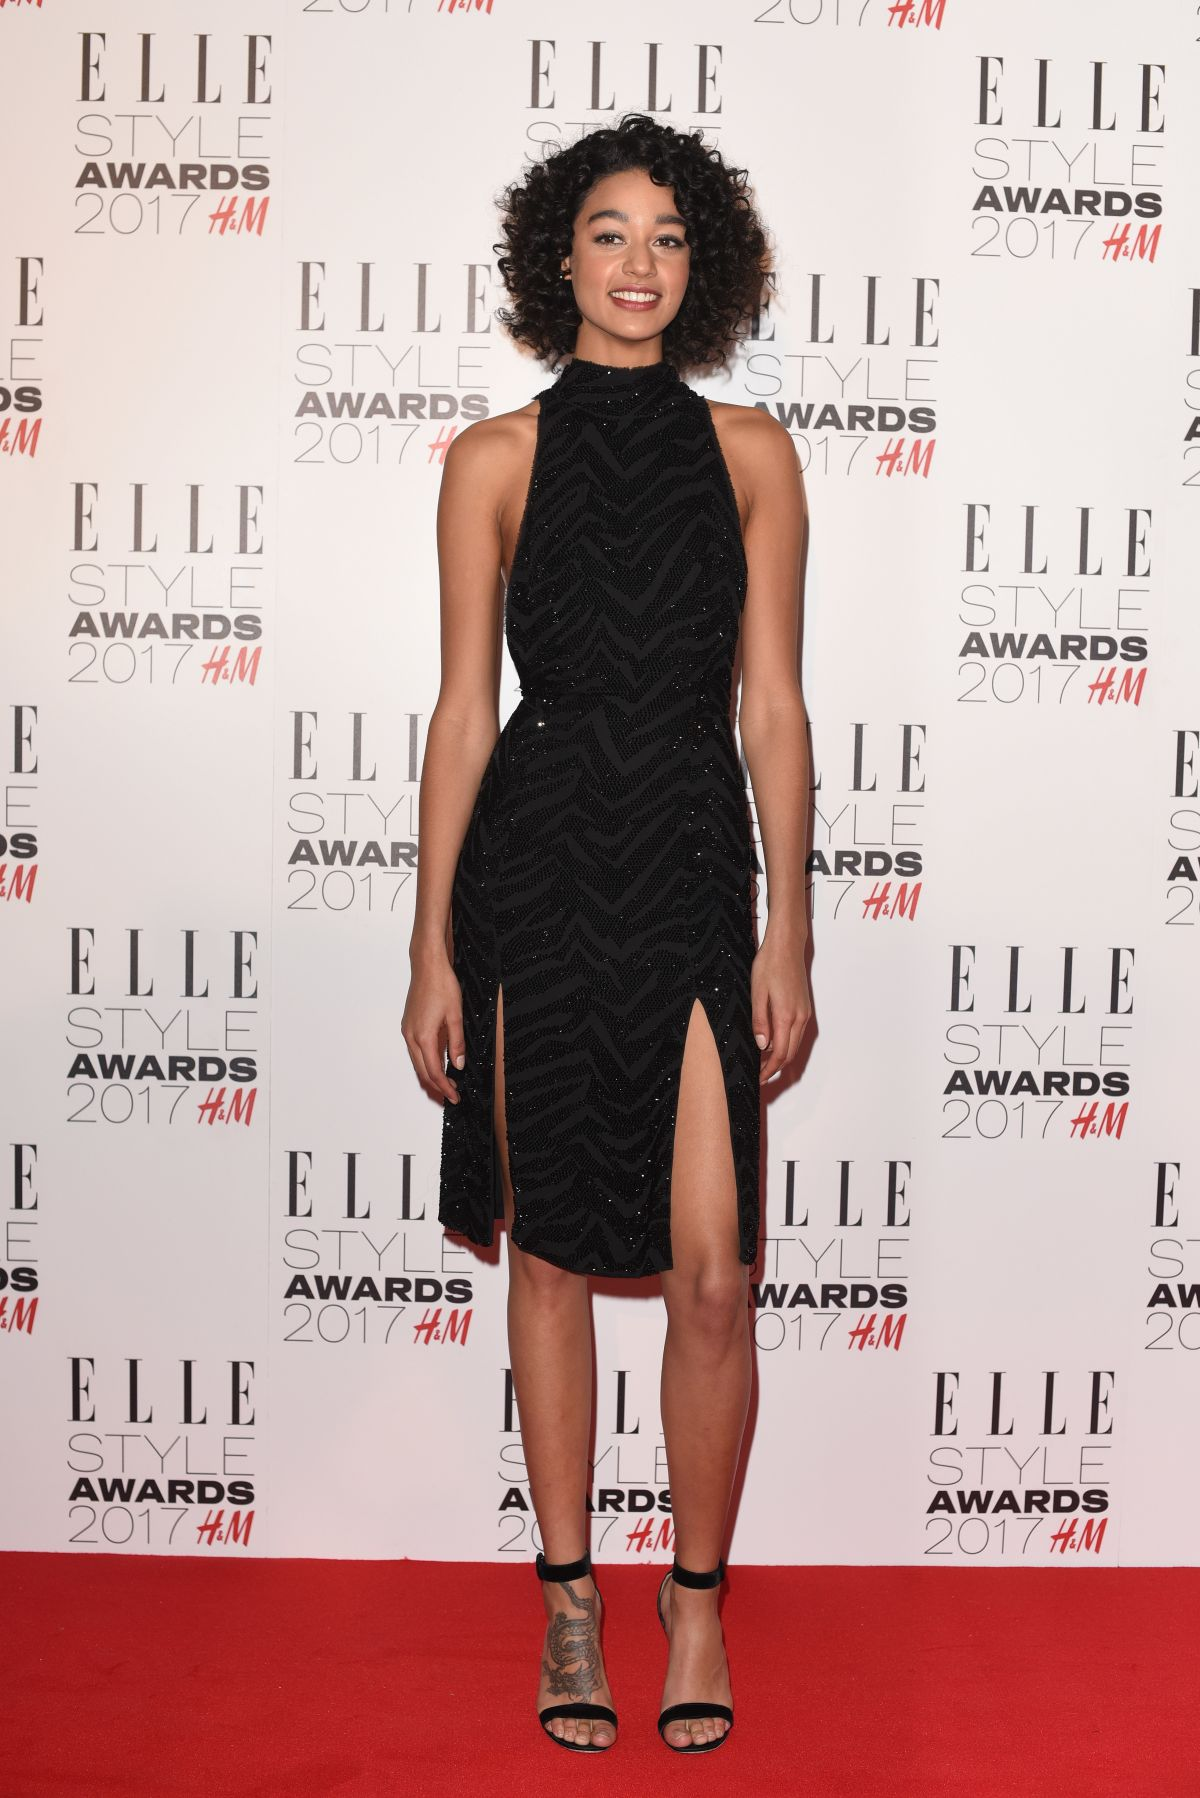 DAMARIS GODDRIE at Elle Style Awards 2017 in London 02/13/2017